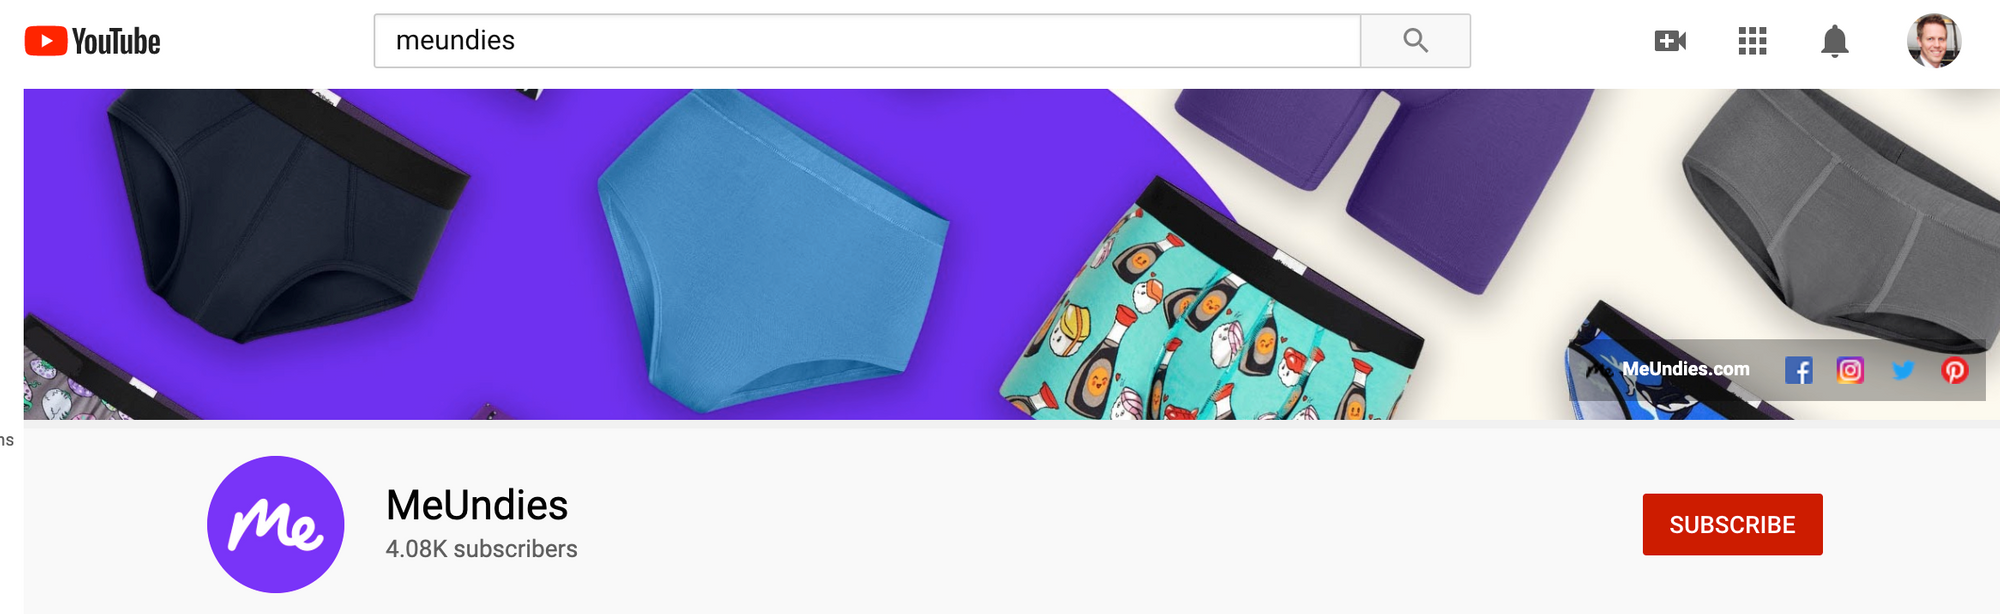 MeUndies links to their homepage and four social profiles in their YouTube banner